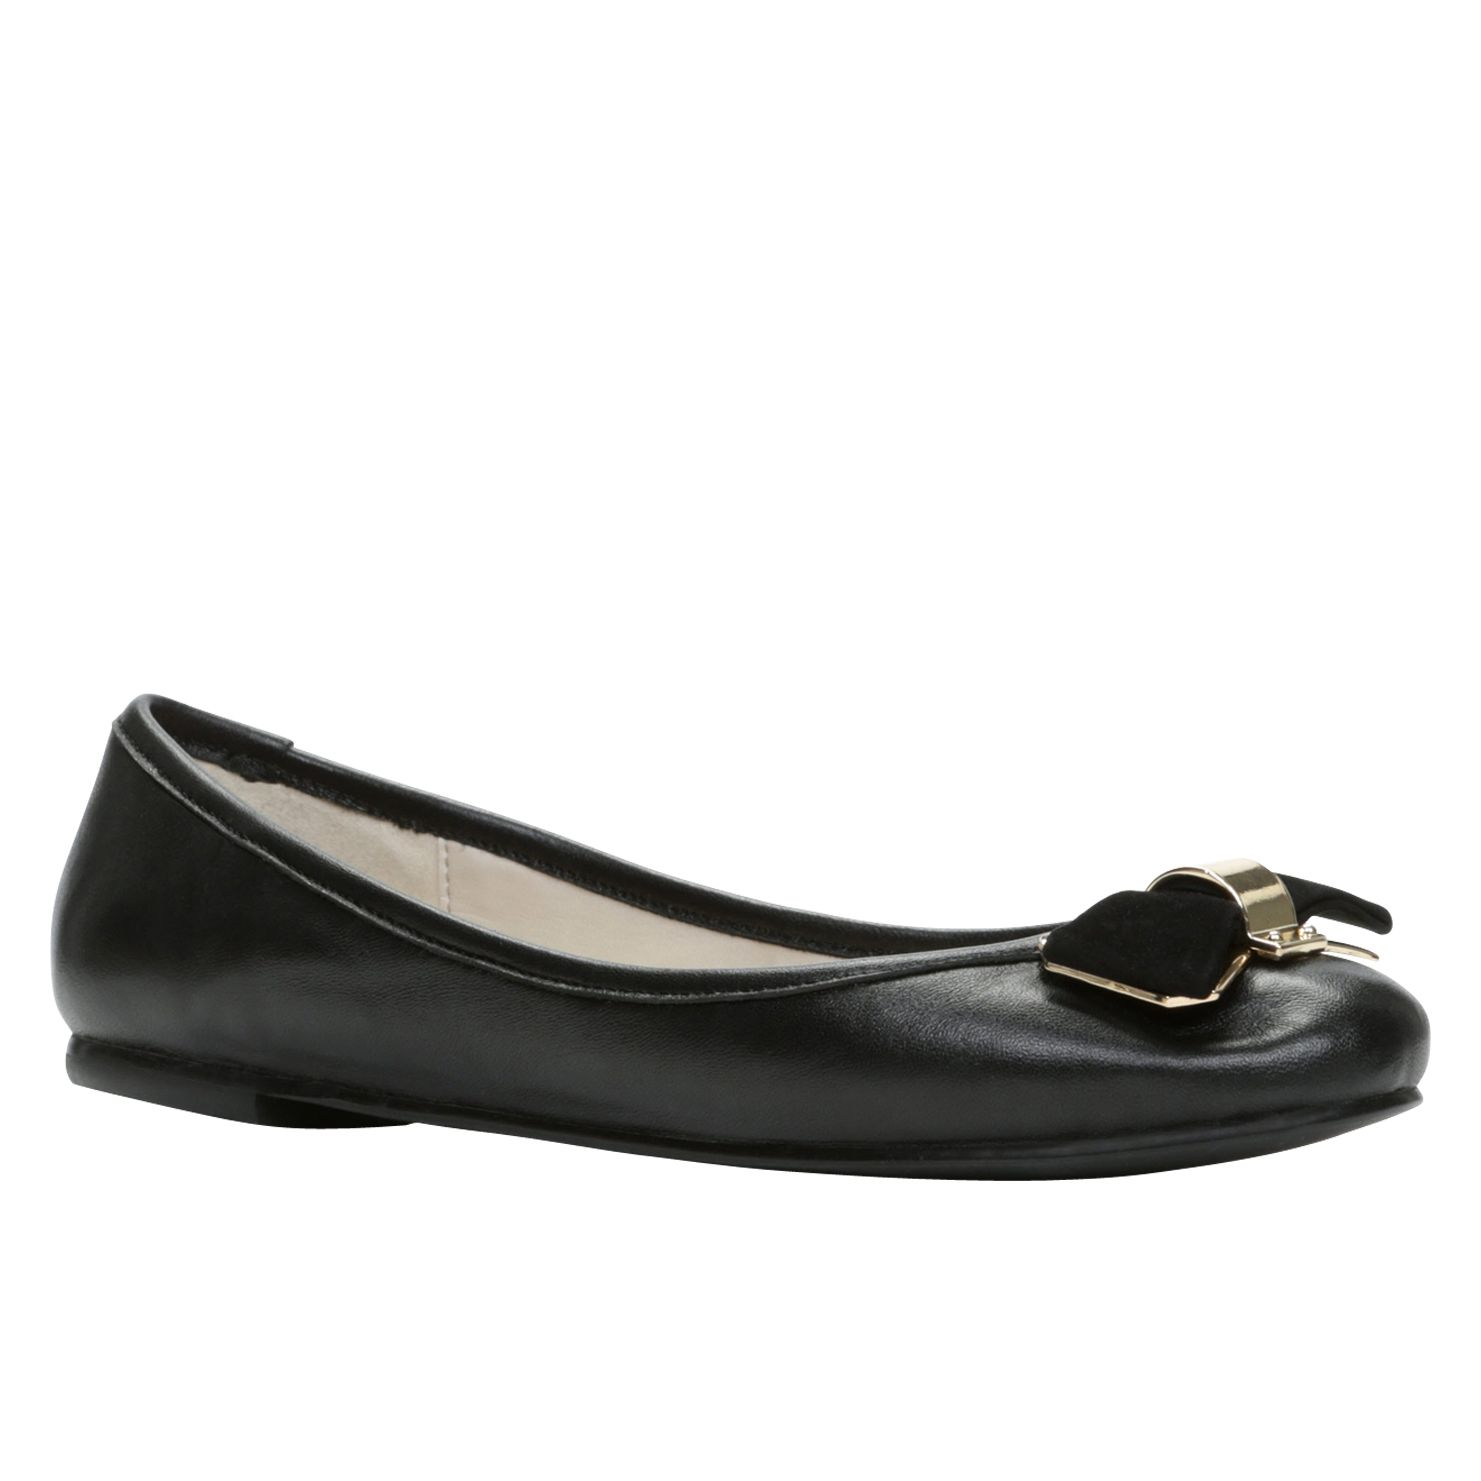 Edaerwen round toe pump shoes